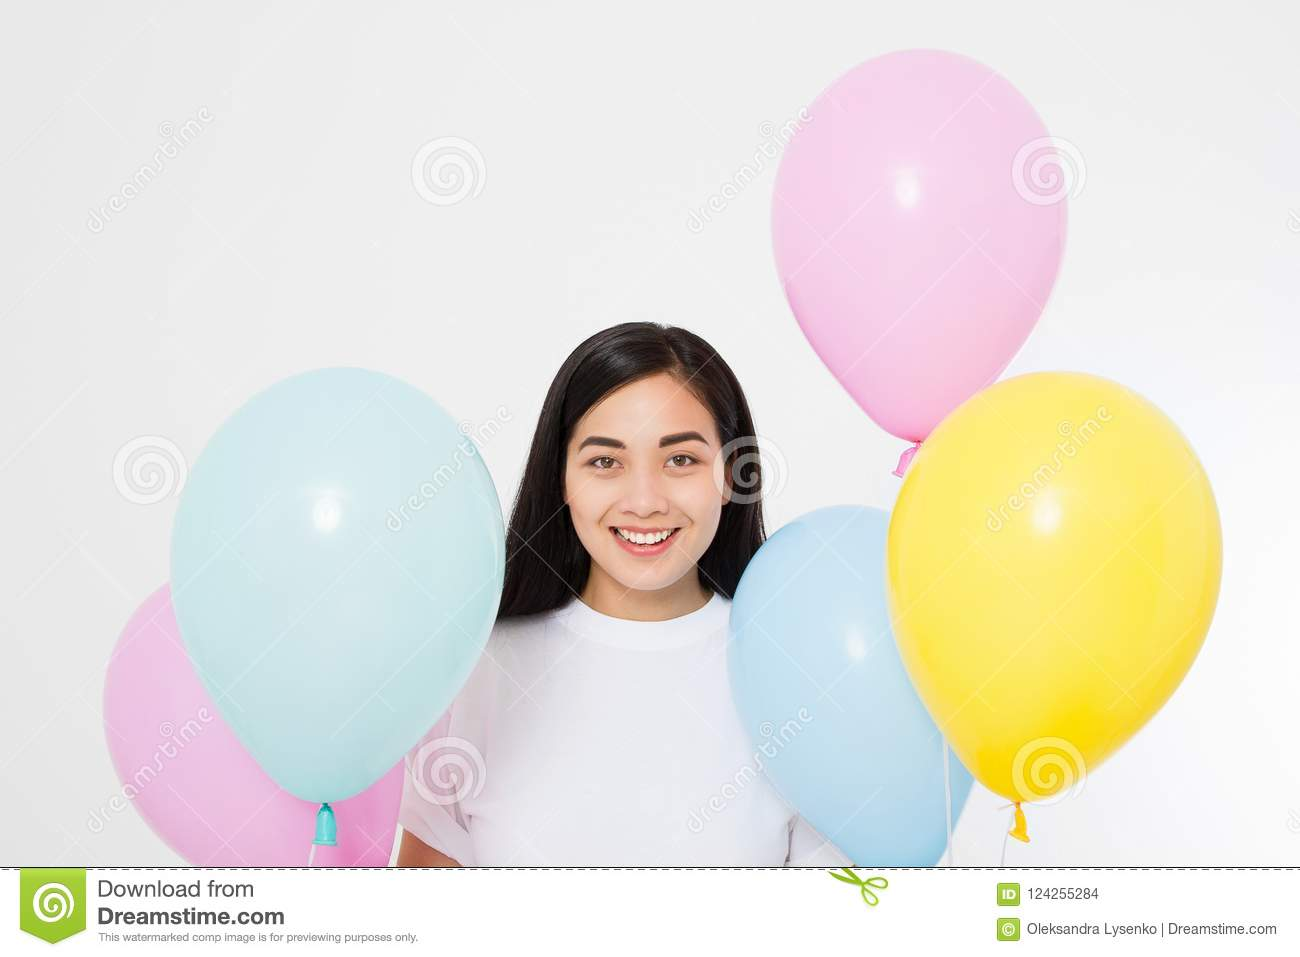 Happy birthday. Balloon party. Happy asian girl with balloons isolated on white background. Copy space.